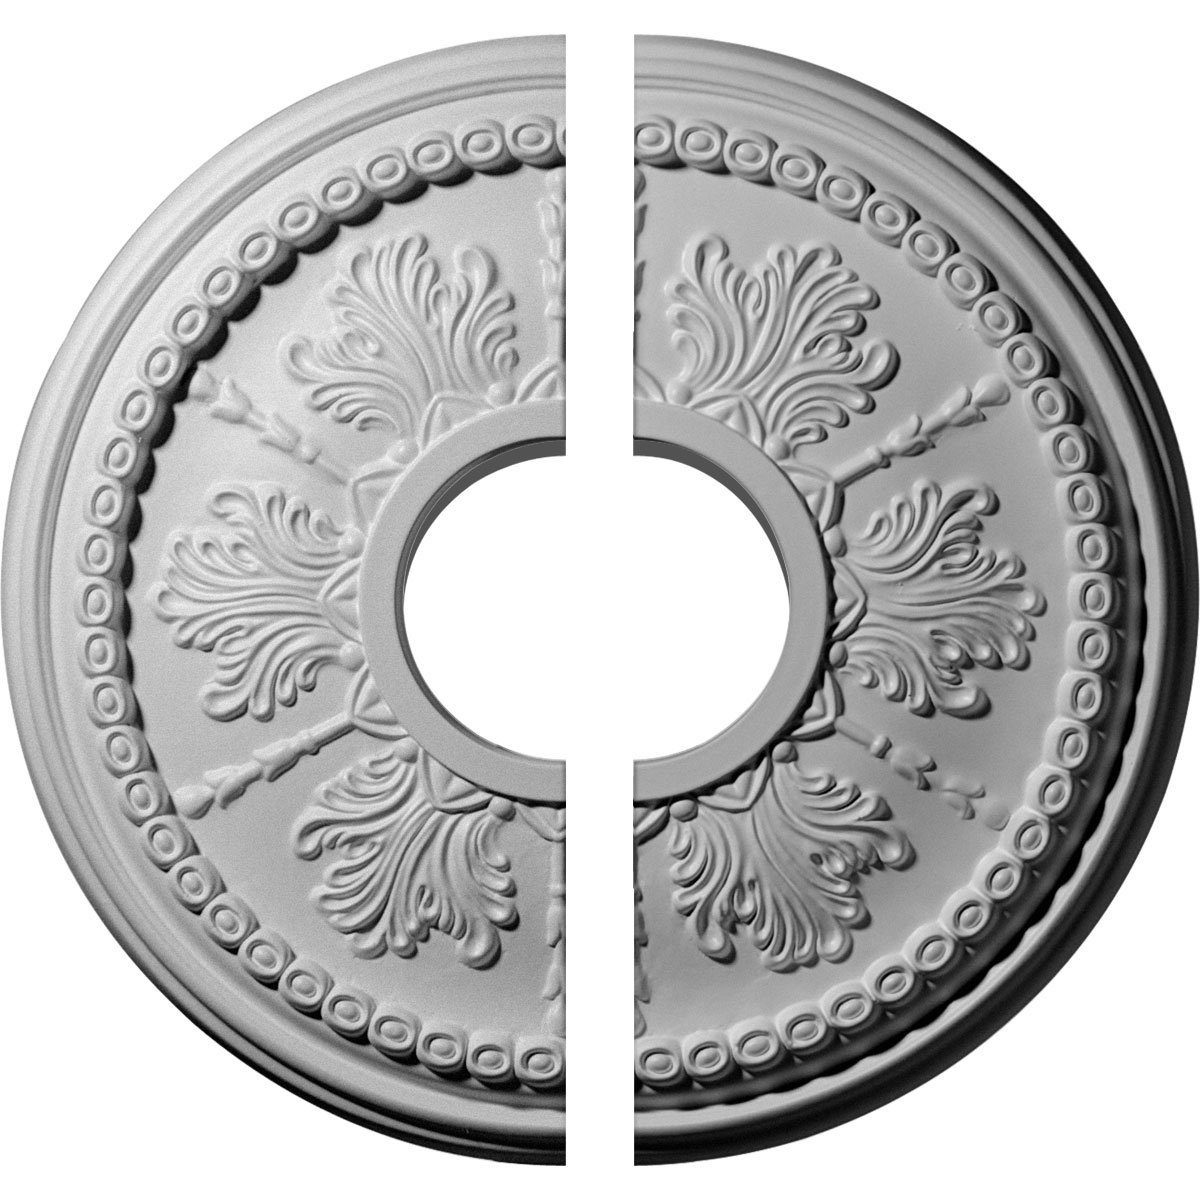 Ekena Millwork CM13TI2 13 7/8'' OD x 3 ID x 1 1/4'' P Tirana Ceiling Medallion, Two Piece (Fits Canopies up to 4 3/4''), Factory Primed and Ready to Paint